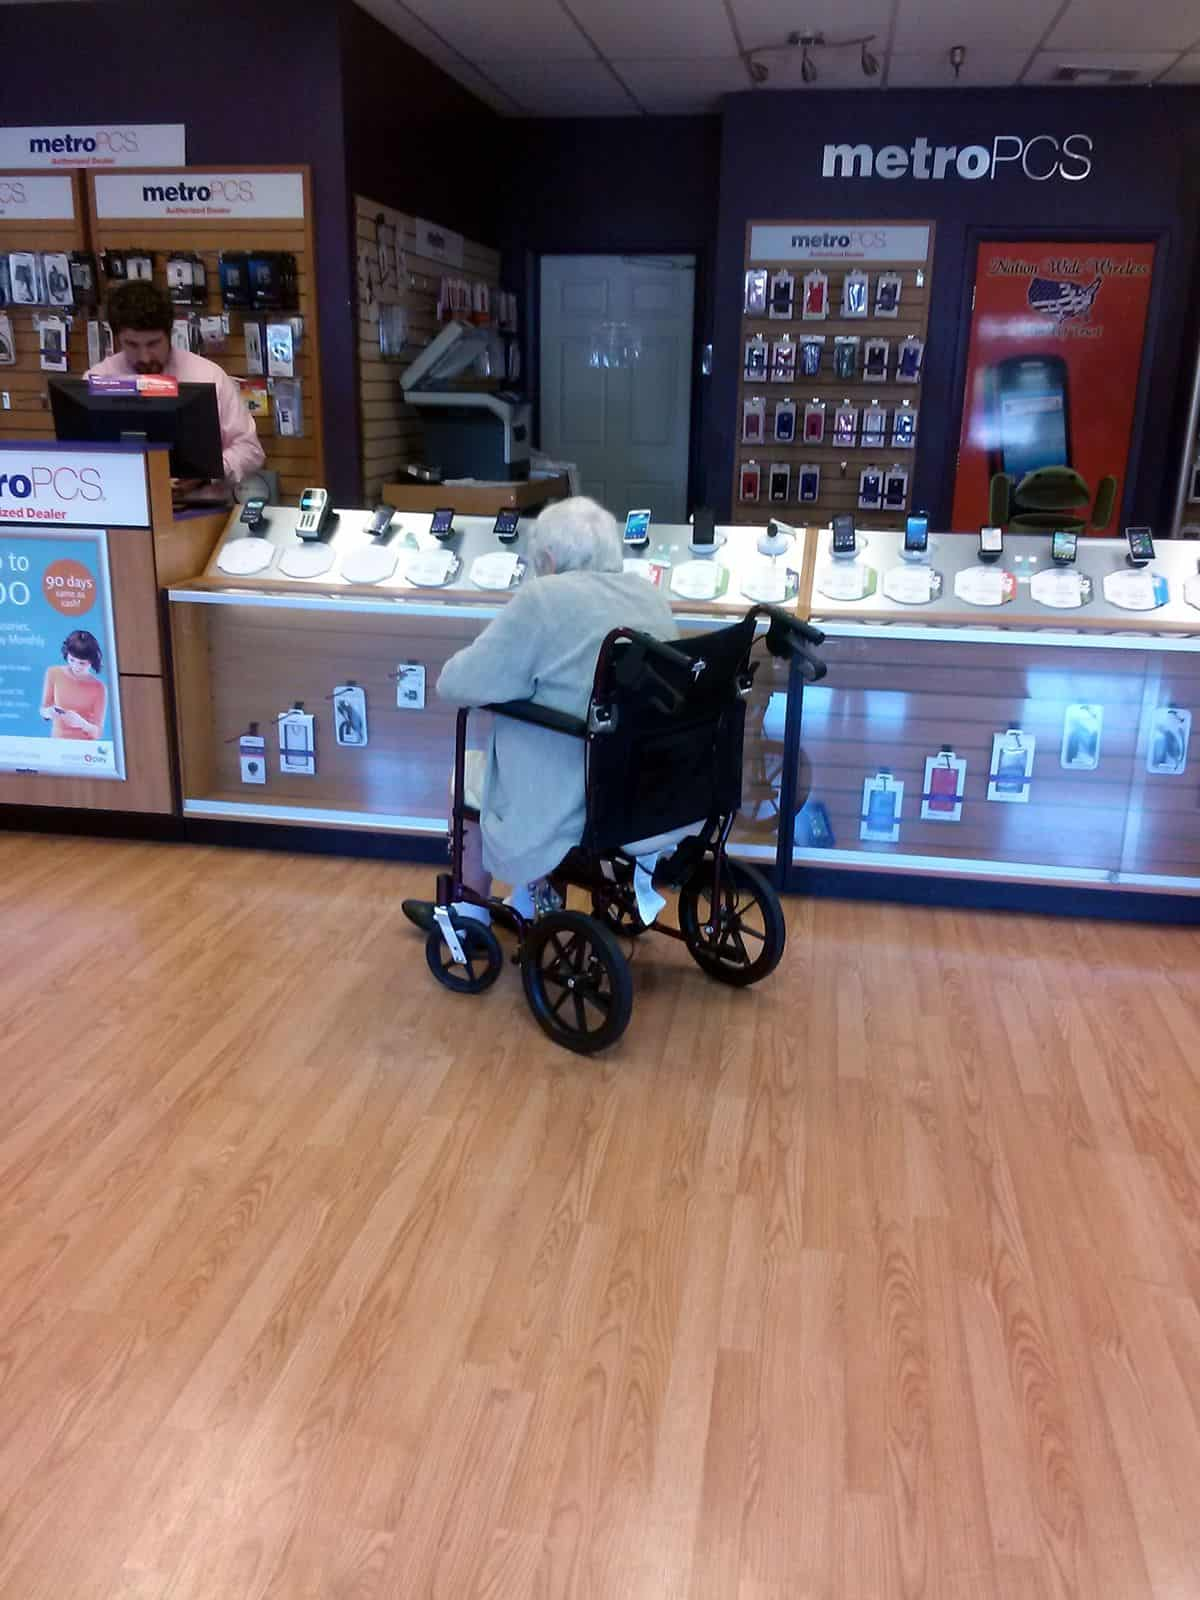 A senior citizen in a wheelchair chooses between several smartphones to purchase.